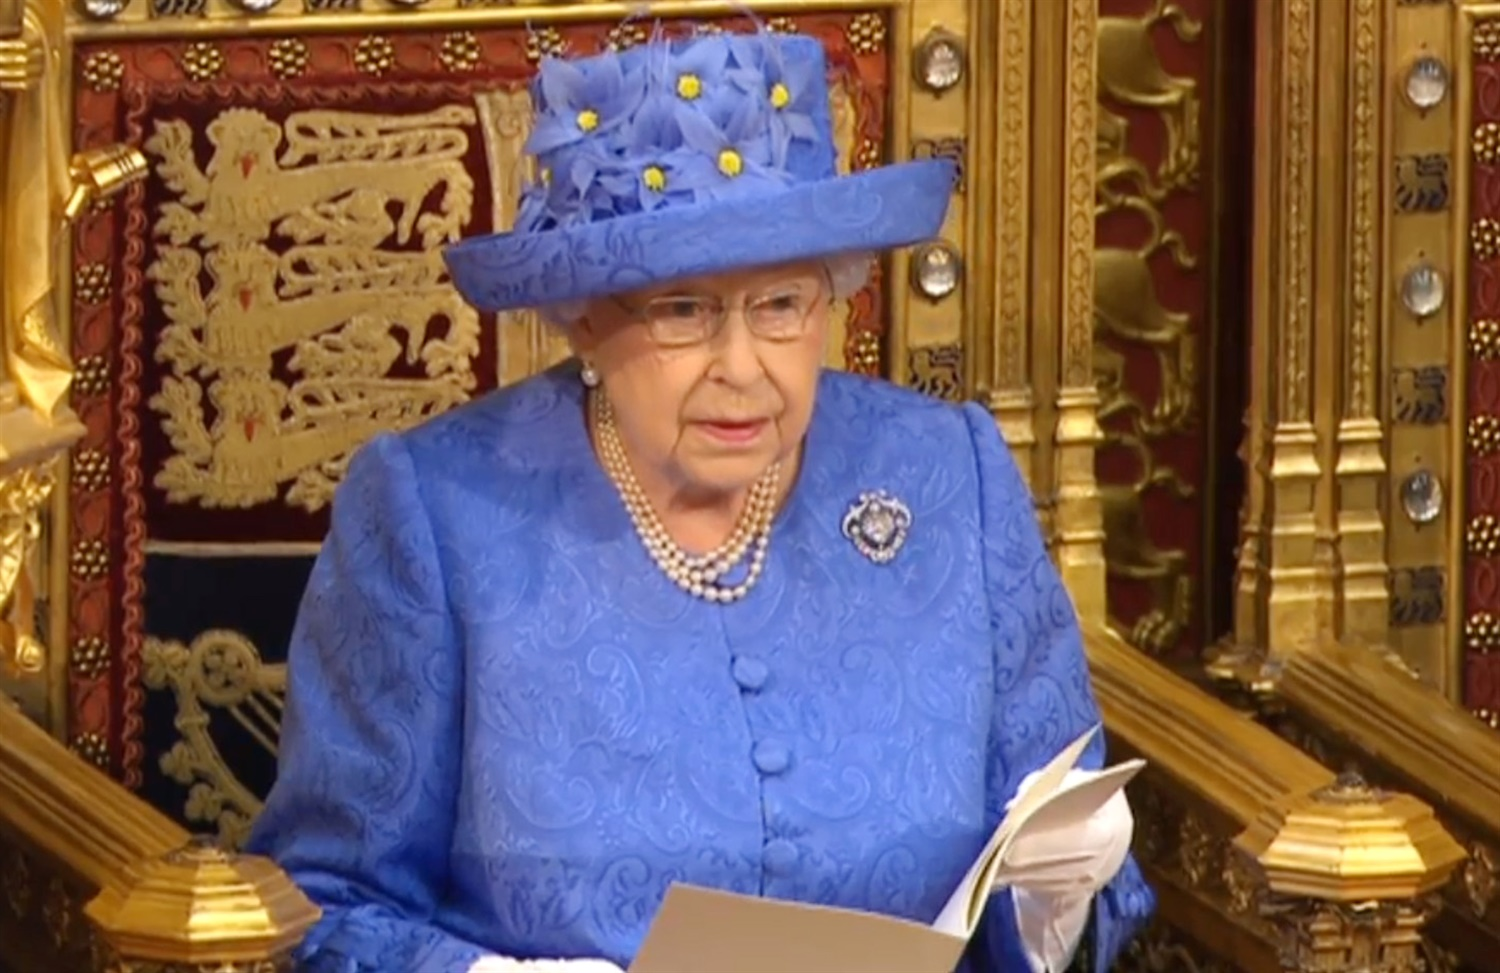 Queen confirms commitment to bring forward HS2 phase 2 bill